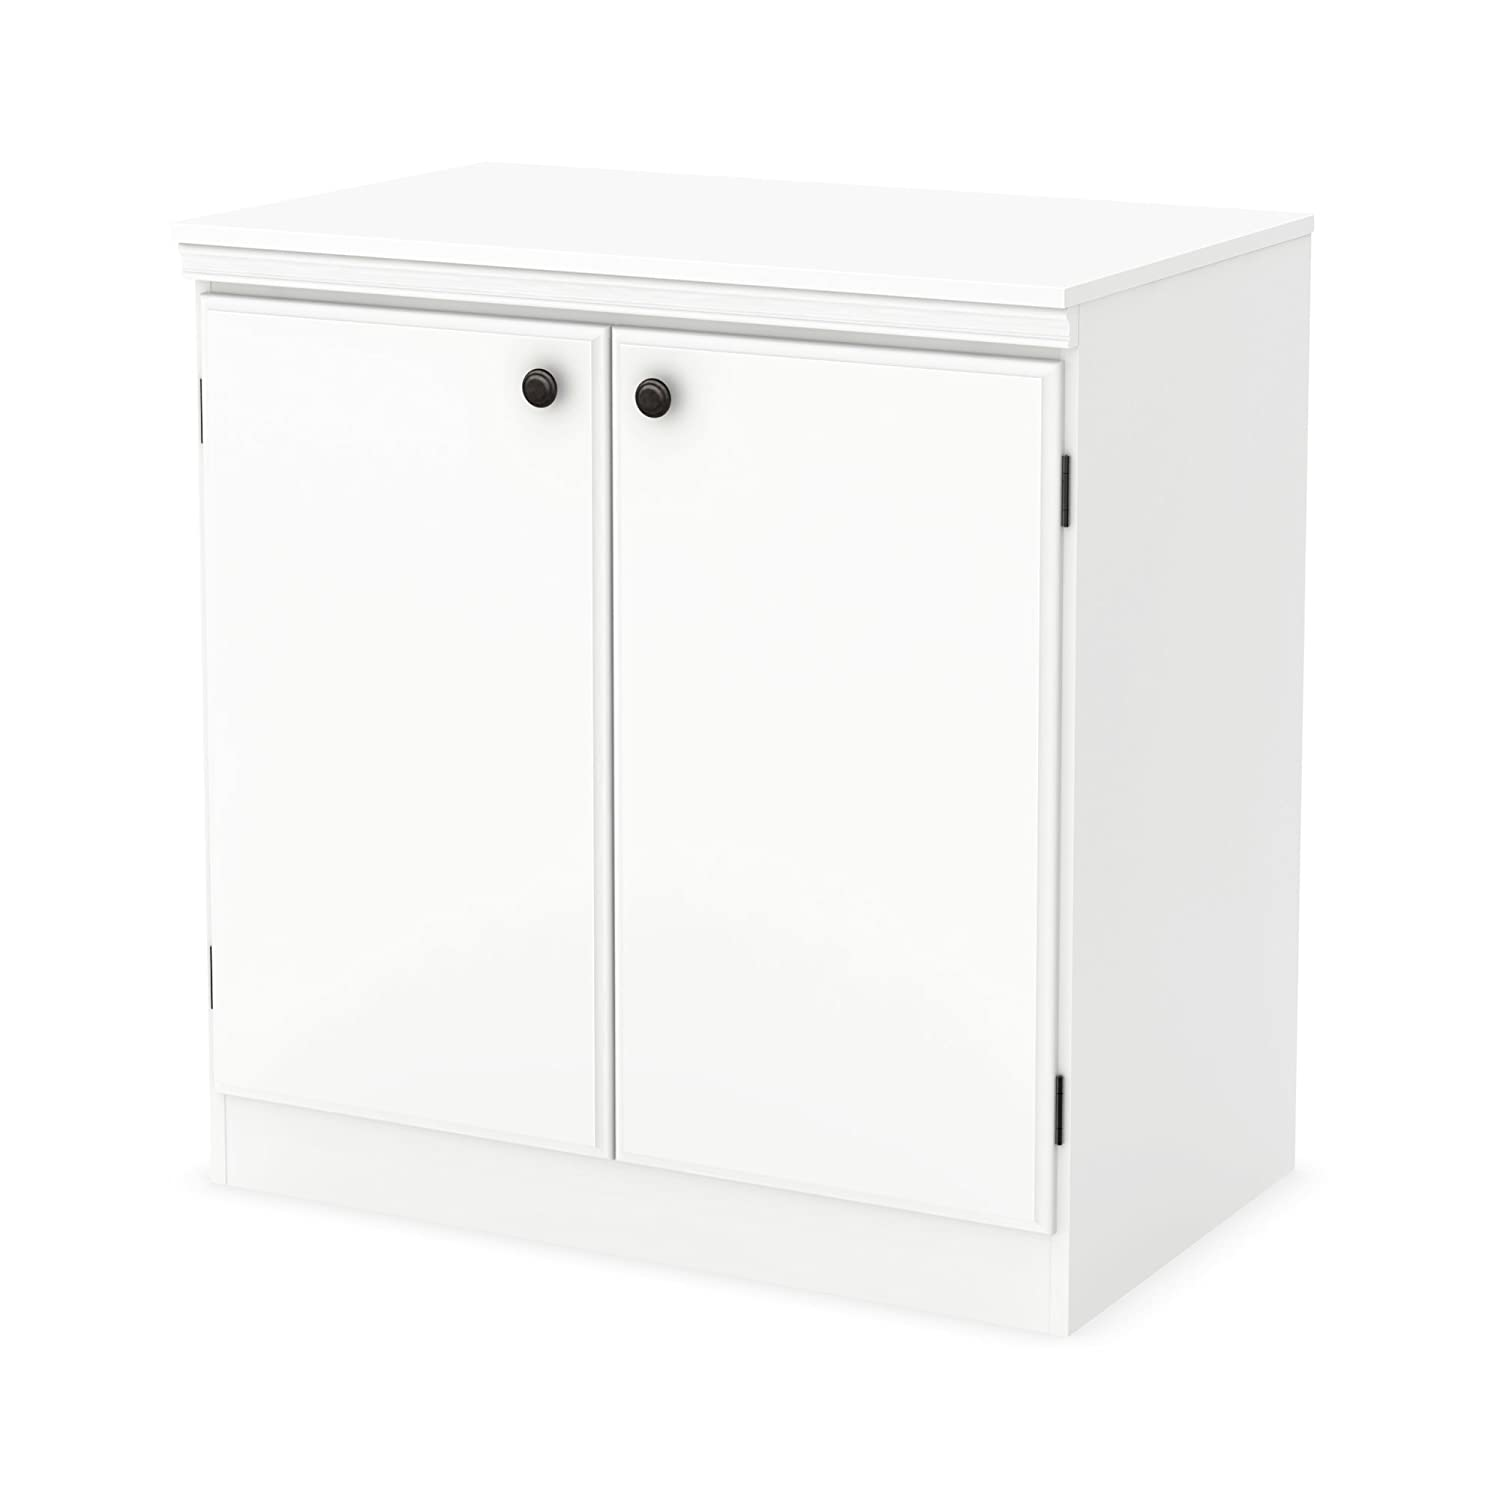 Incroyable Amazon.com: South Shore Morgan 2 Door Storage Cabinet, Pure White: Kitchen  U0026 Dining